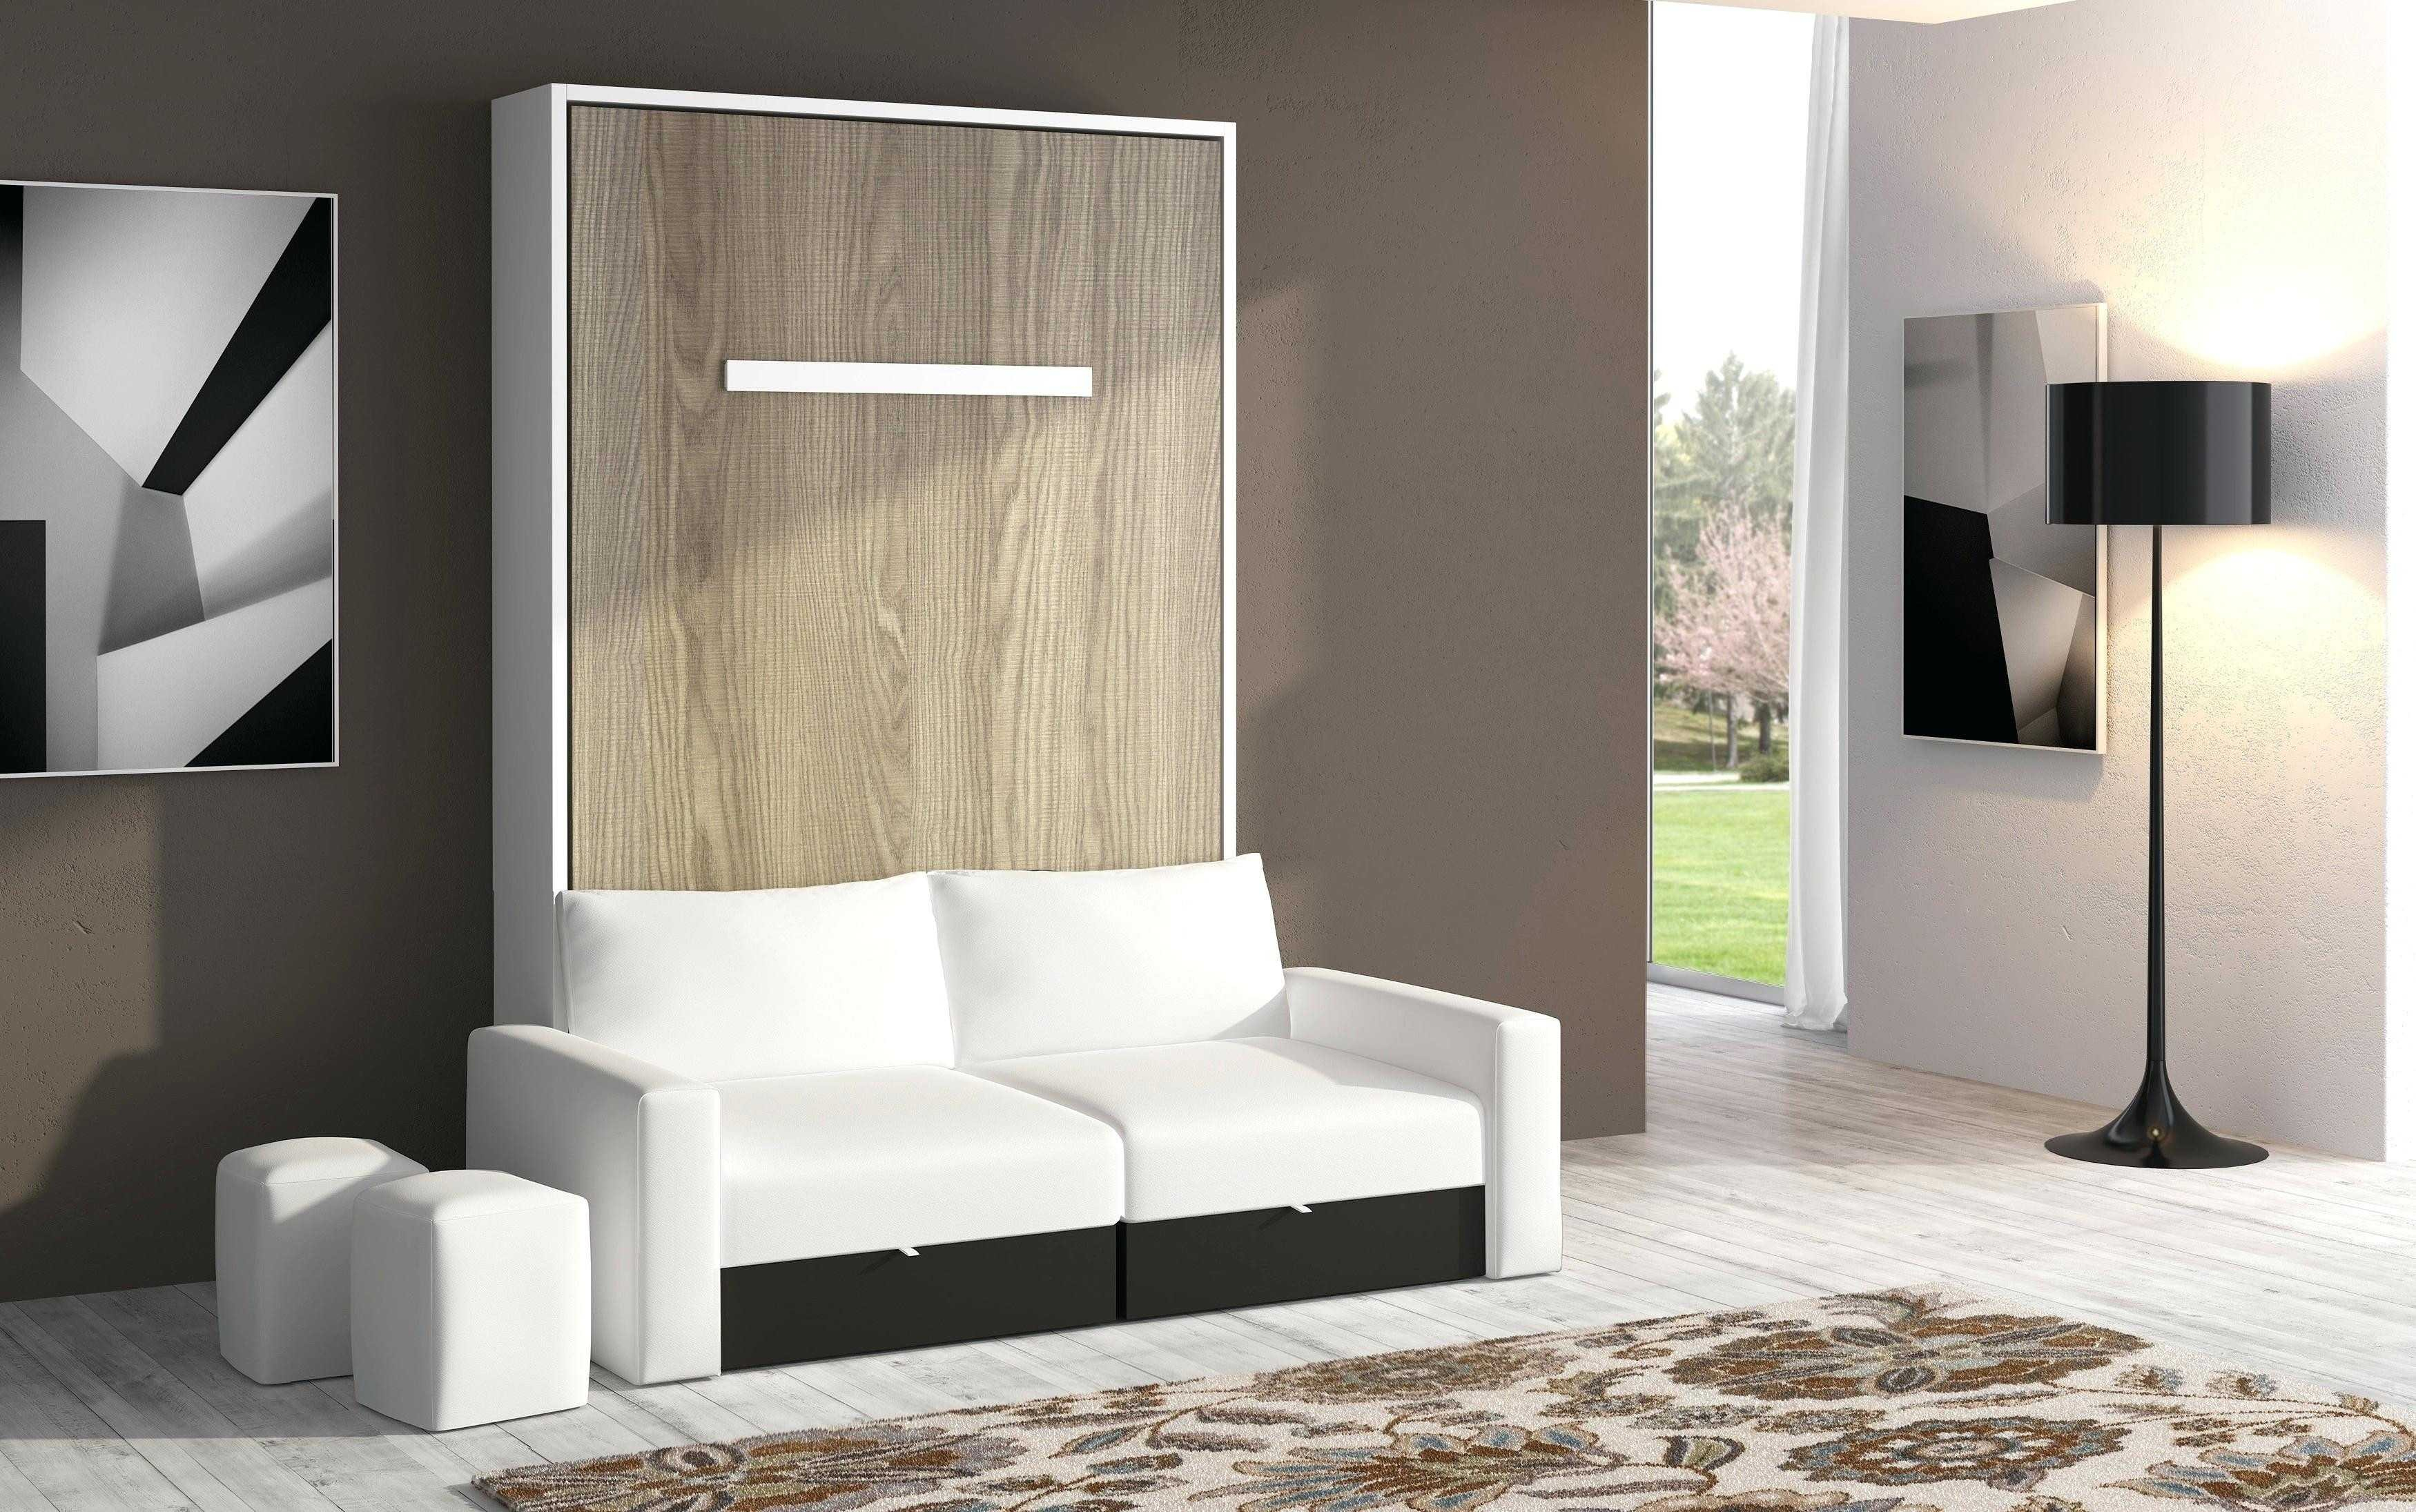 Canapé Cdiscount Angle Luxe Photographie Lit Armoire Canapé Beautiful Canap En U Convertible 12 Full Canape D